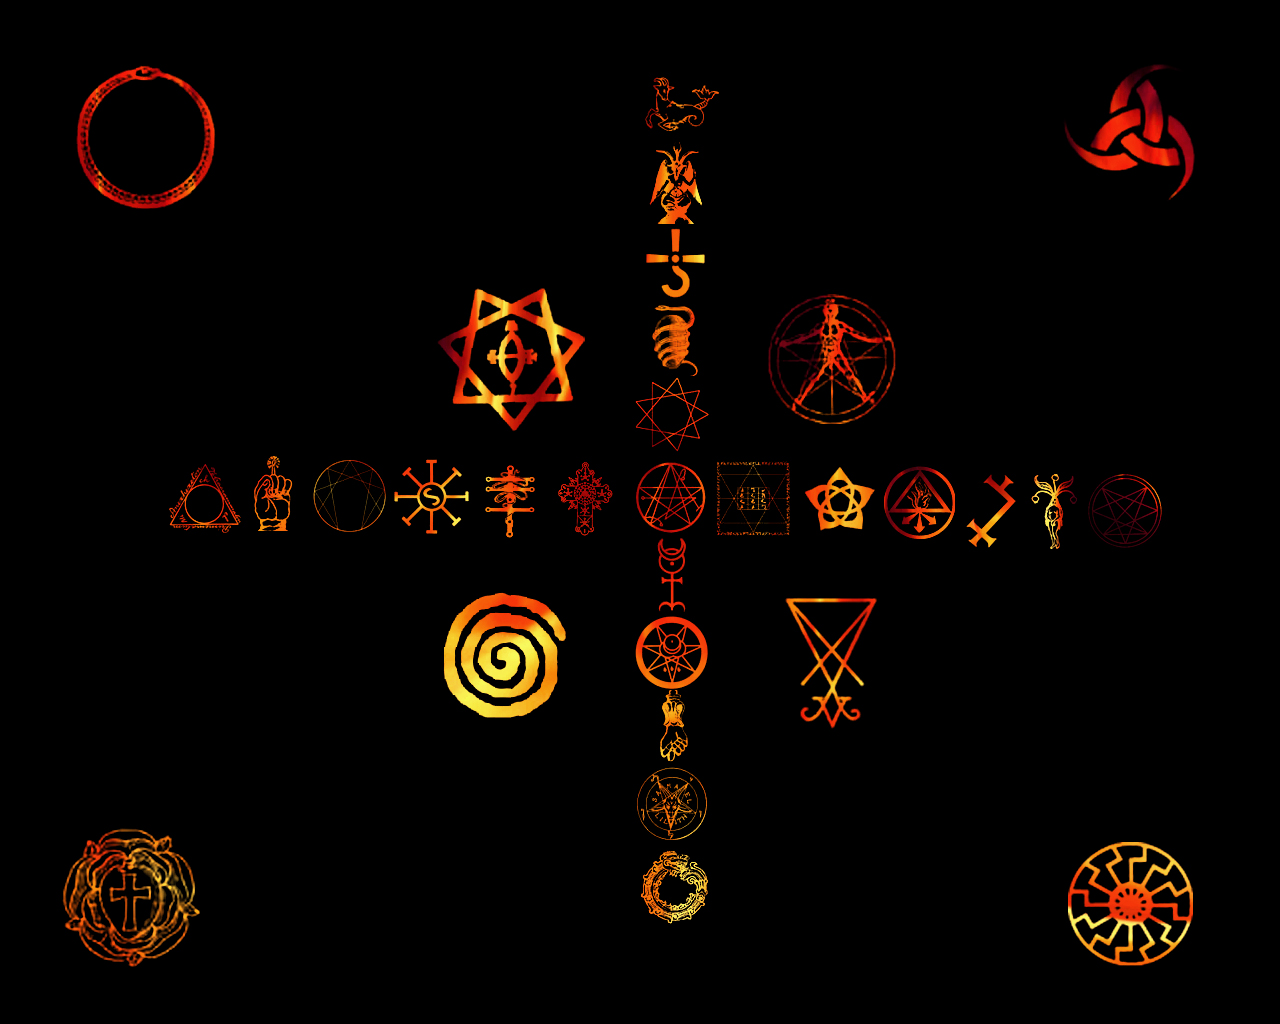 Occult Wallpapers Horror Backgrounds Dark Gothic Wallpapers 1280x1024